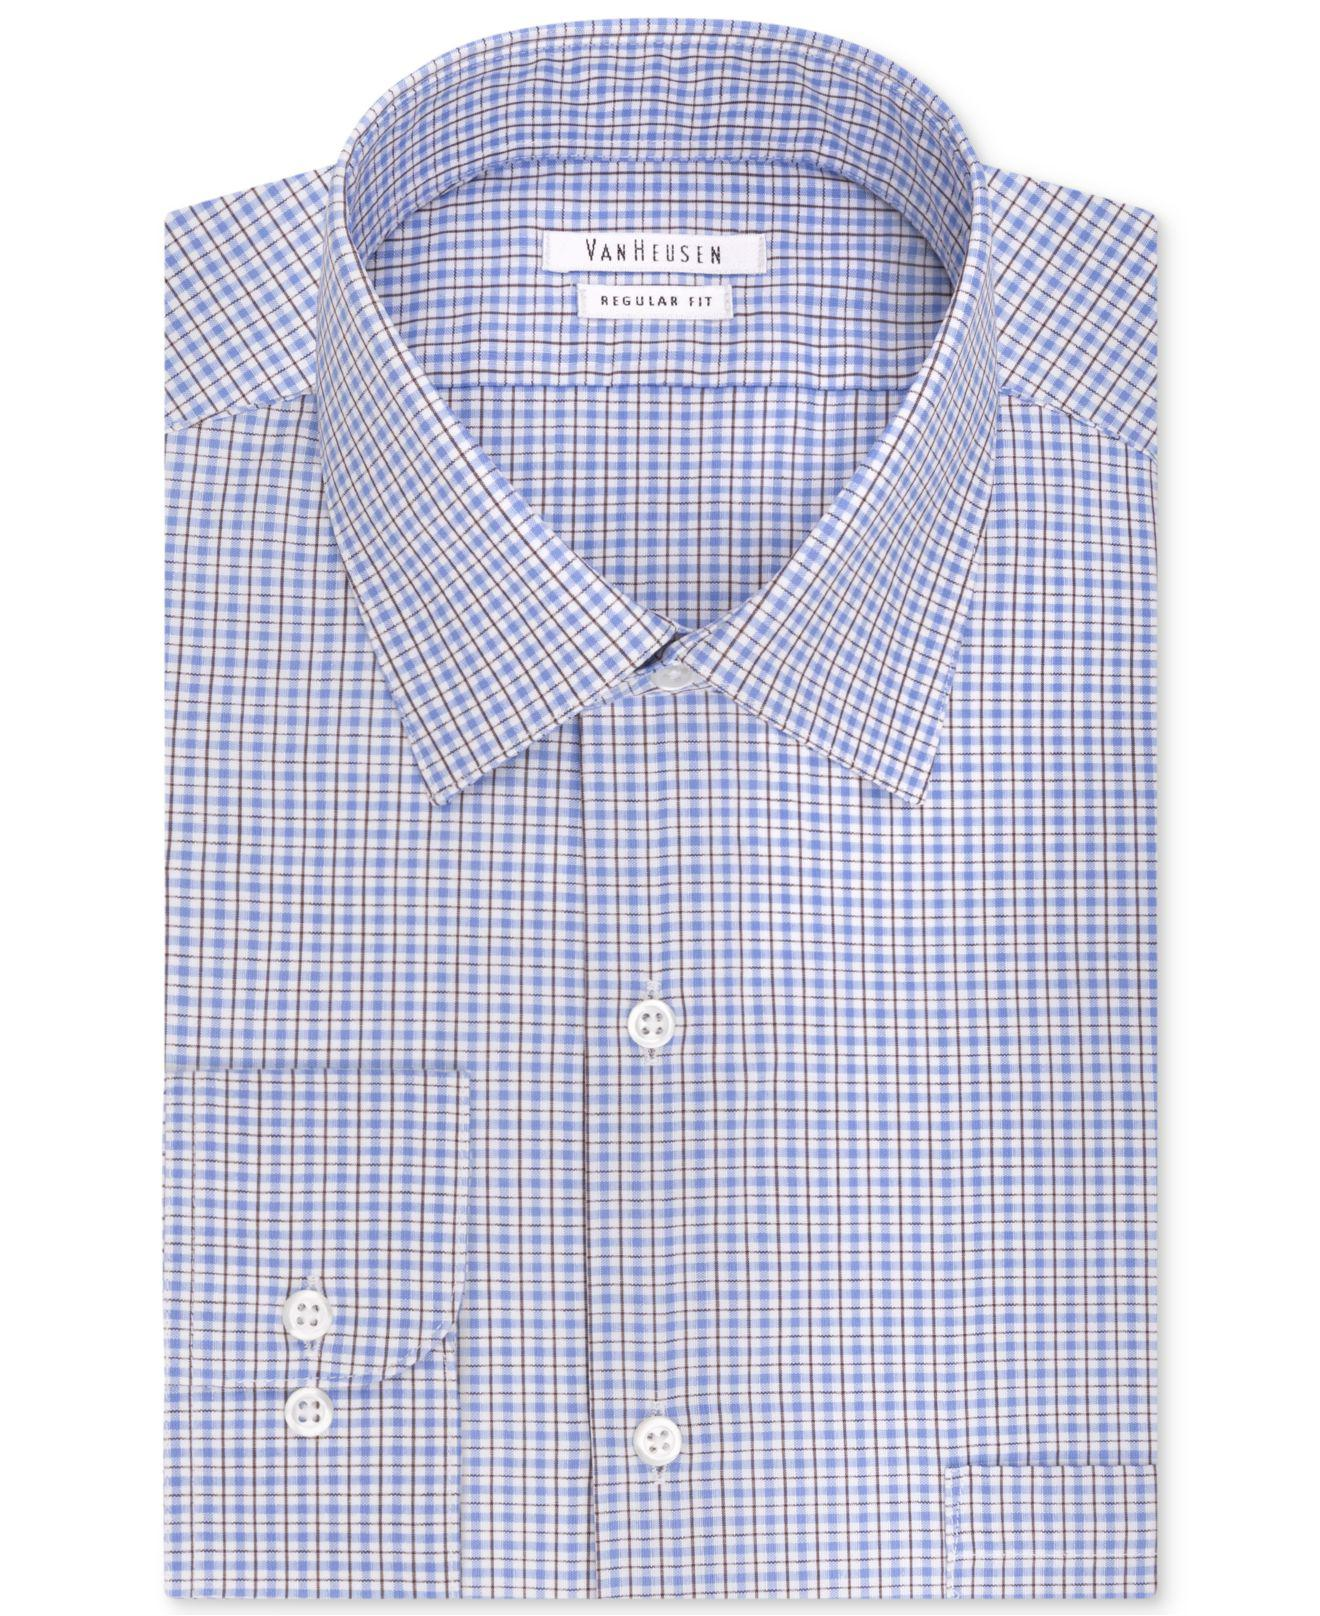 Lyst Van Heusen Classic Fit Blue Multi Check Dress Shirt In Blue